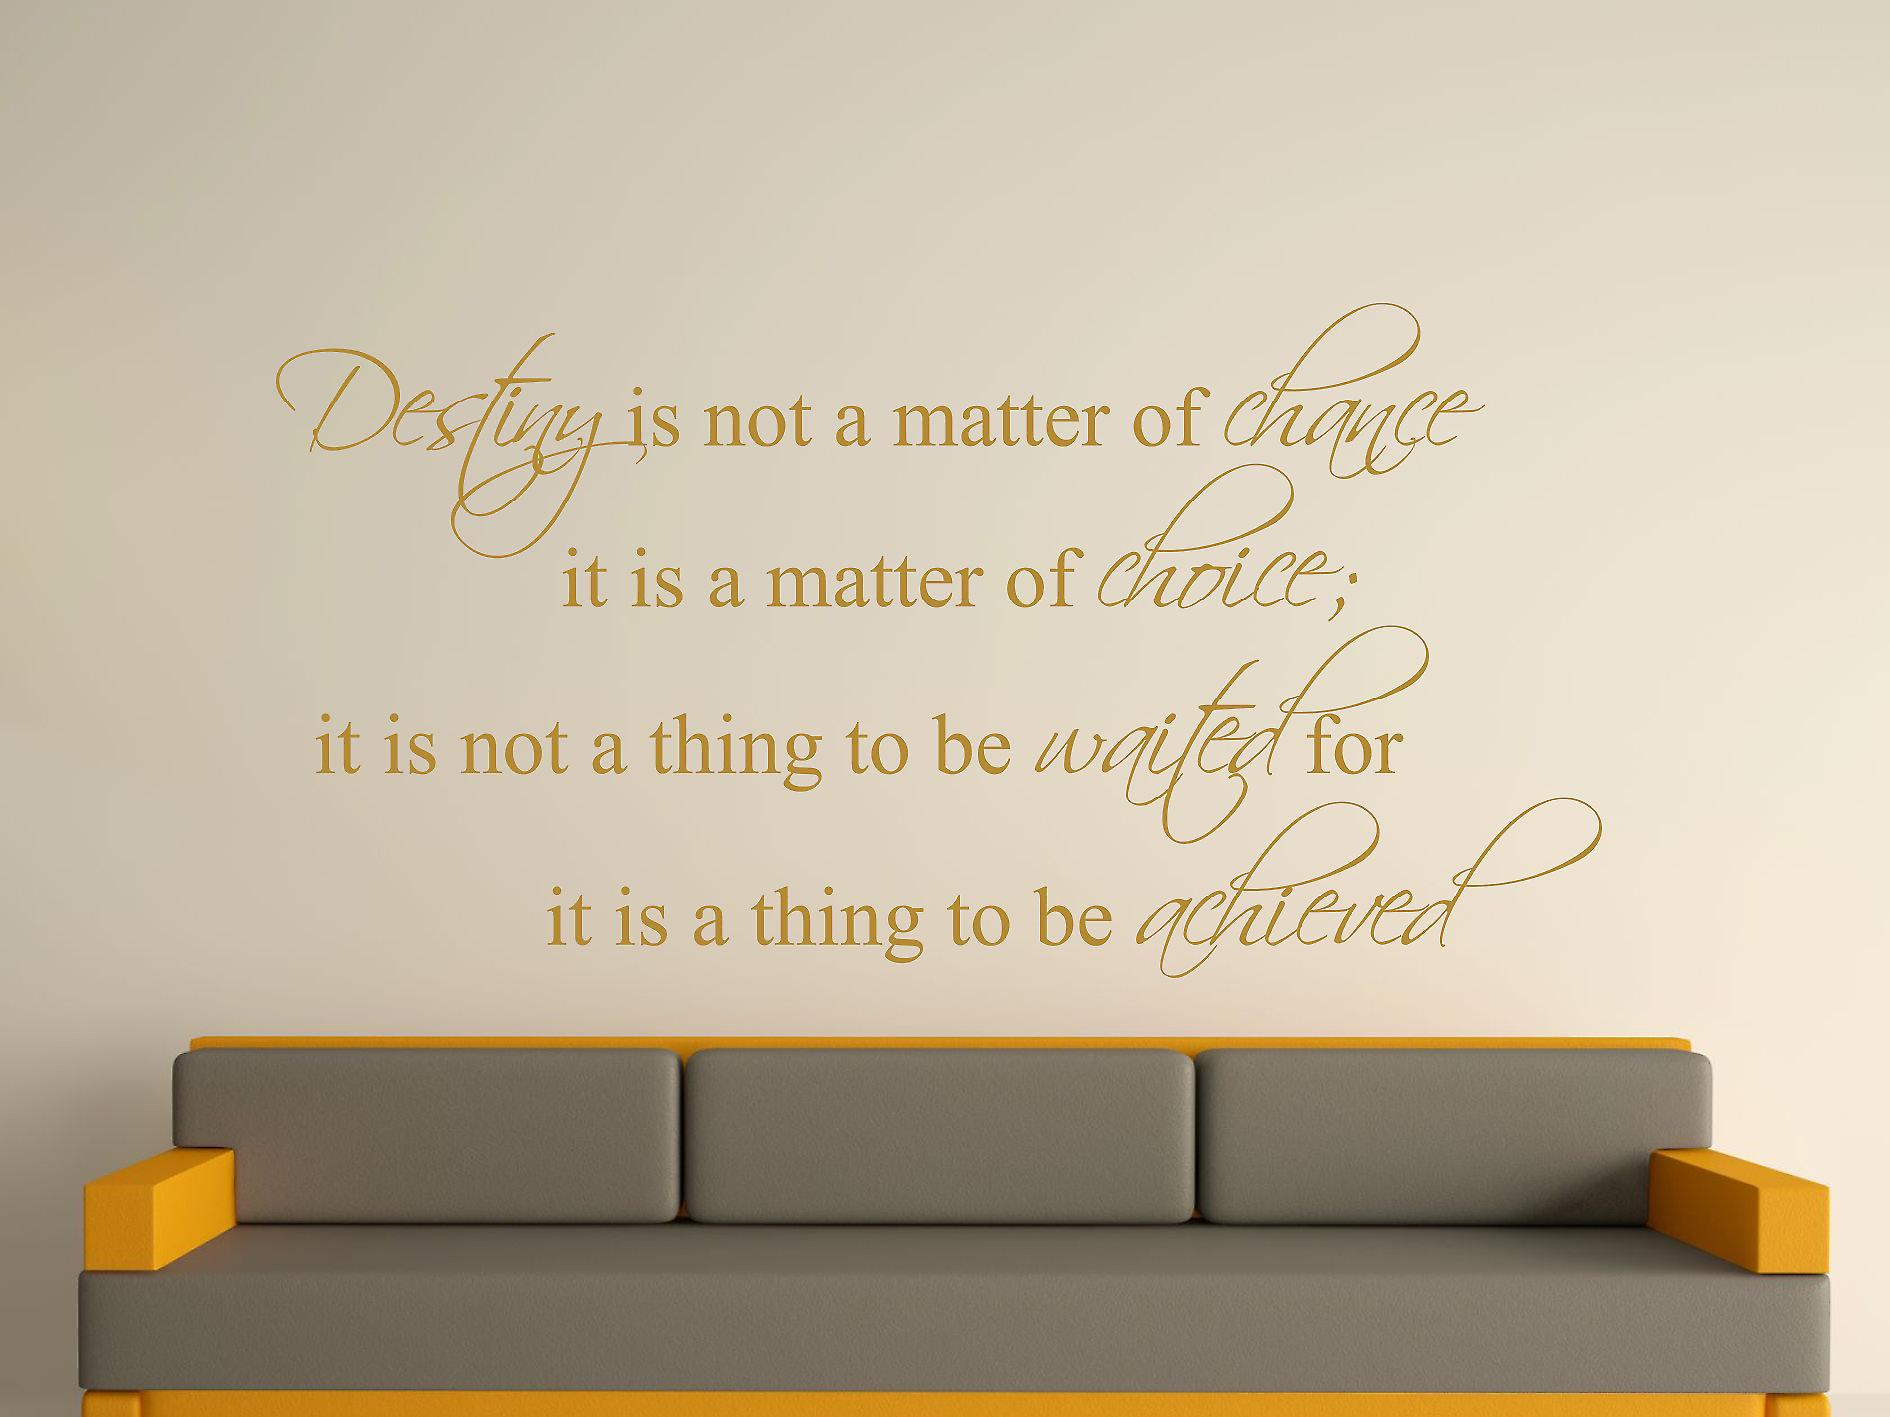 Destiny Is Not A Matter of Chance Wall Art Sticker - Gold